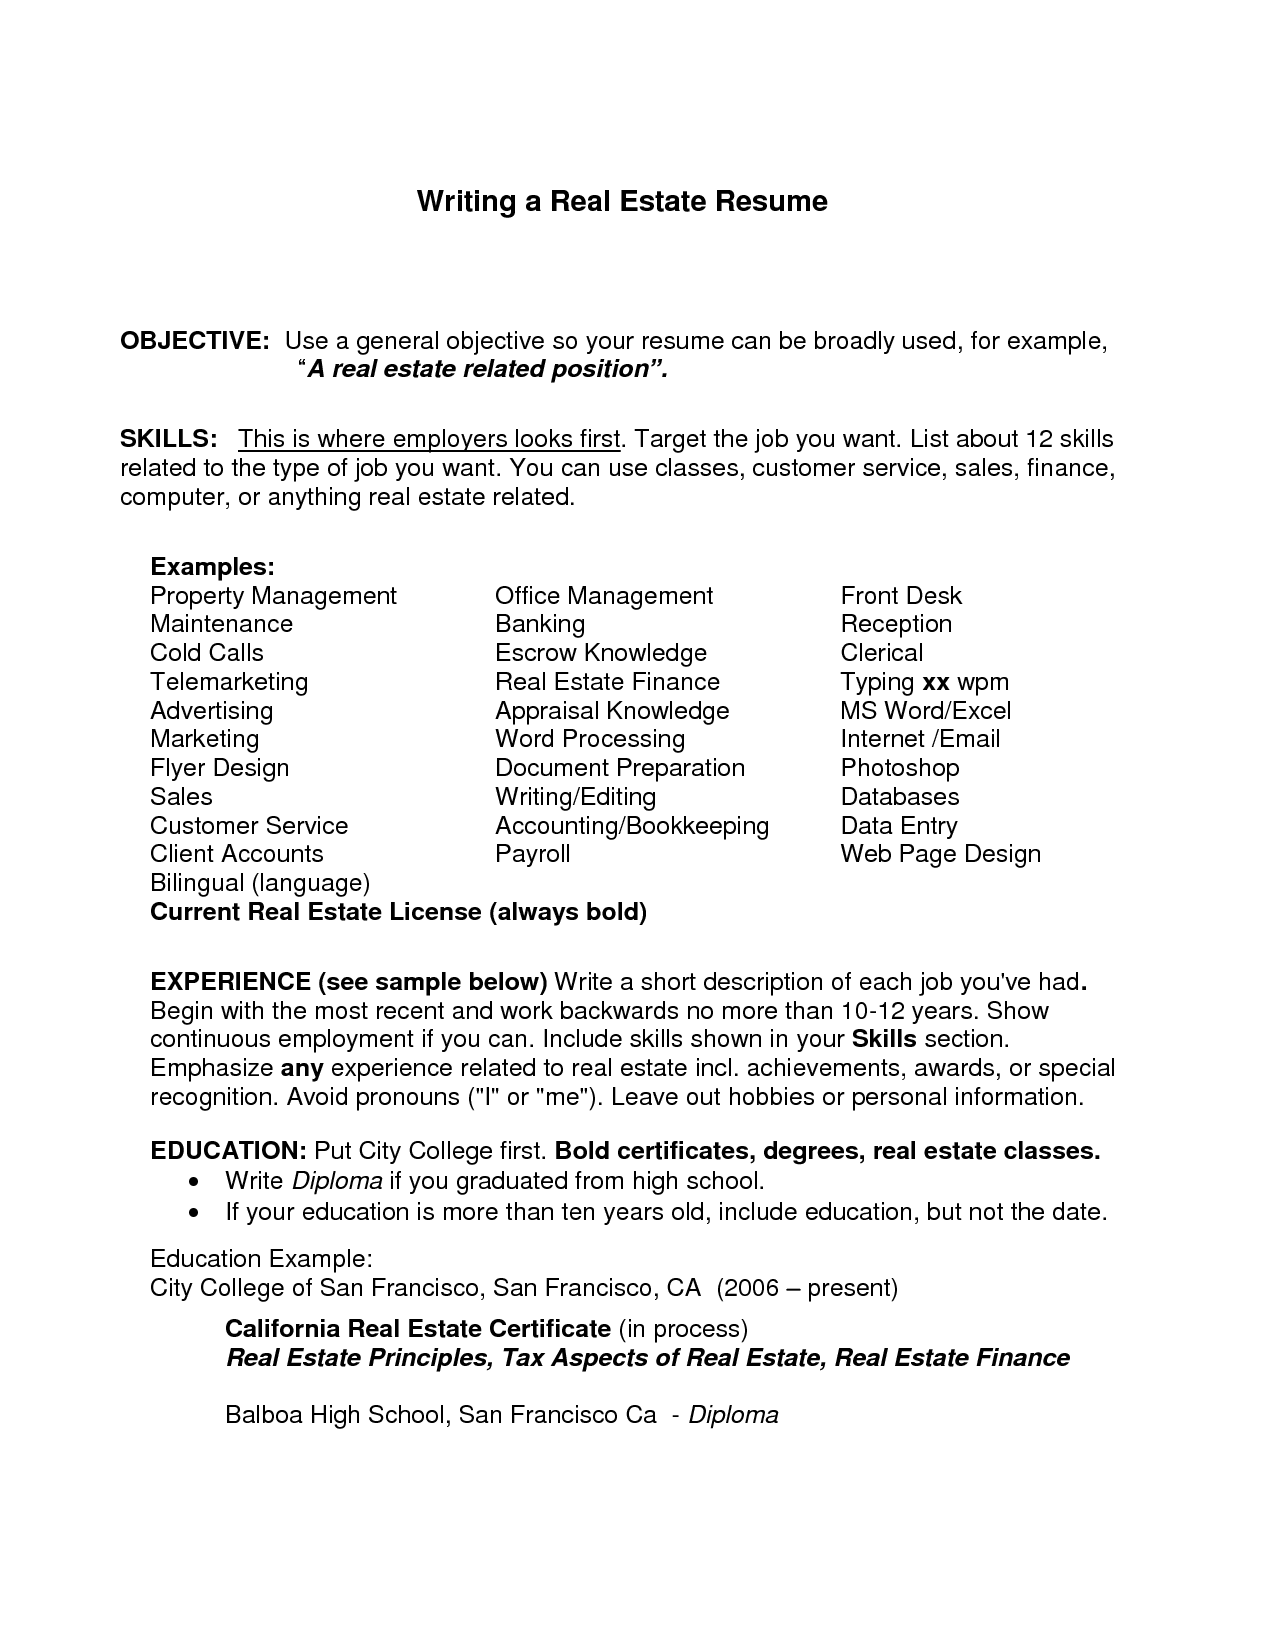 example for resume objectives